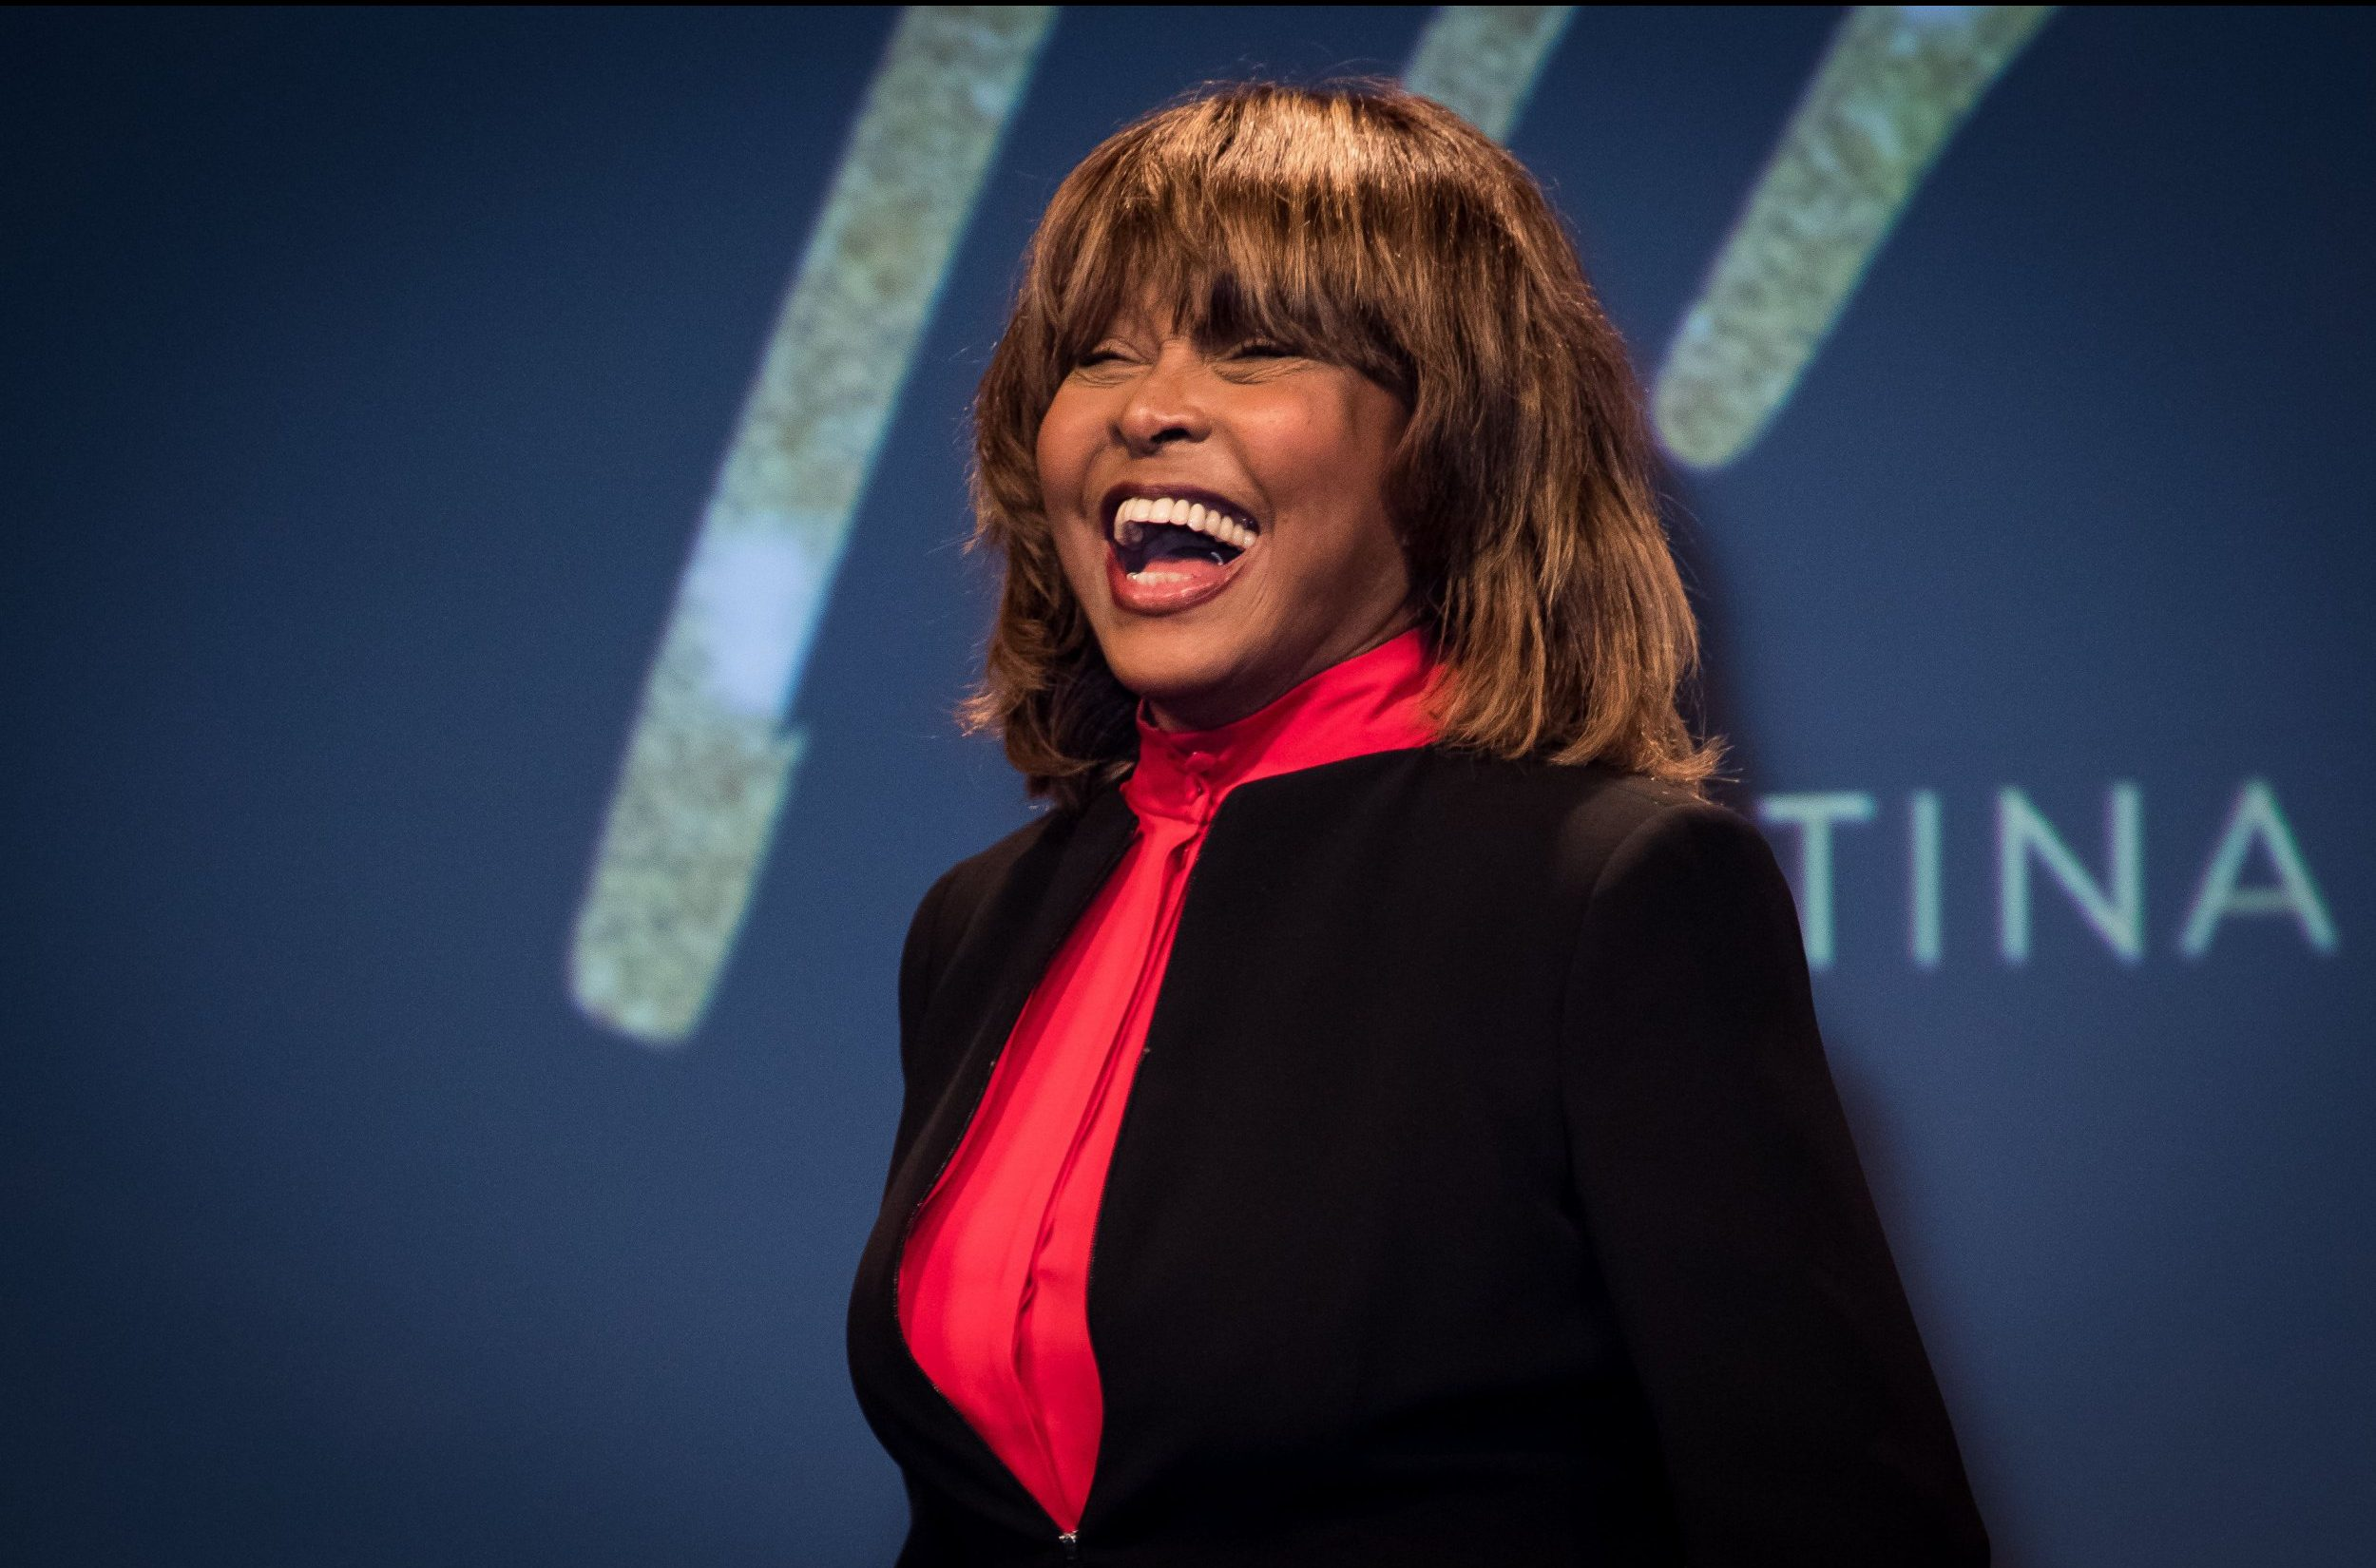 Tina Turner, 77, will reveal hidden secrets in new musical: 'She has more to tell'